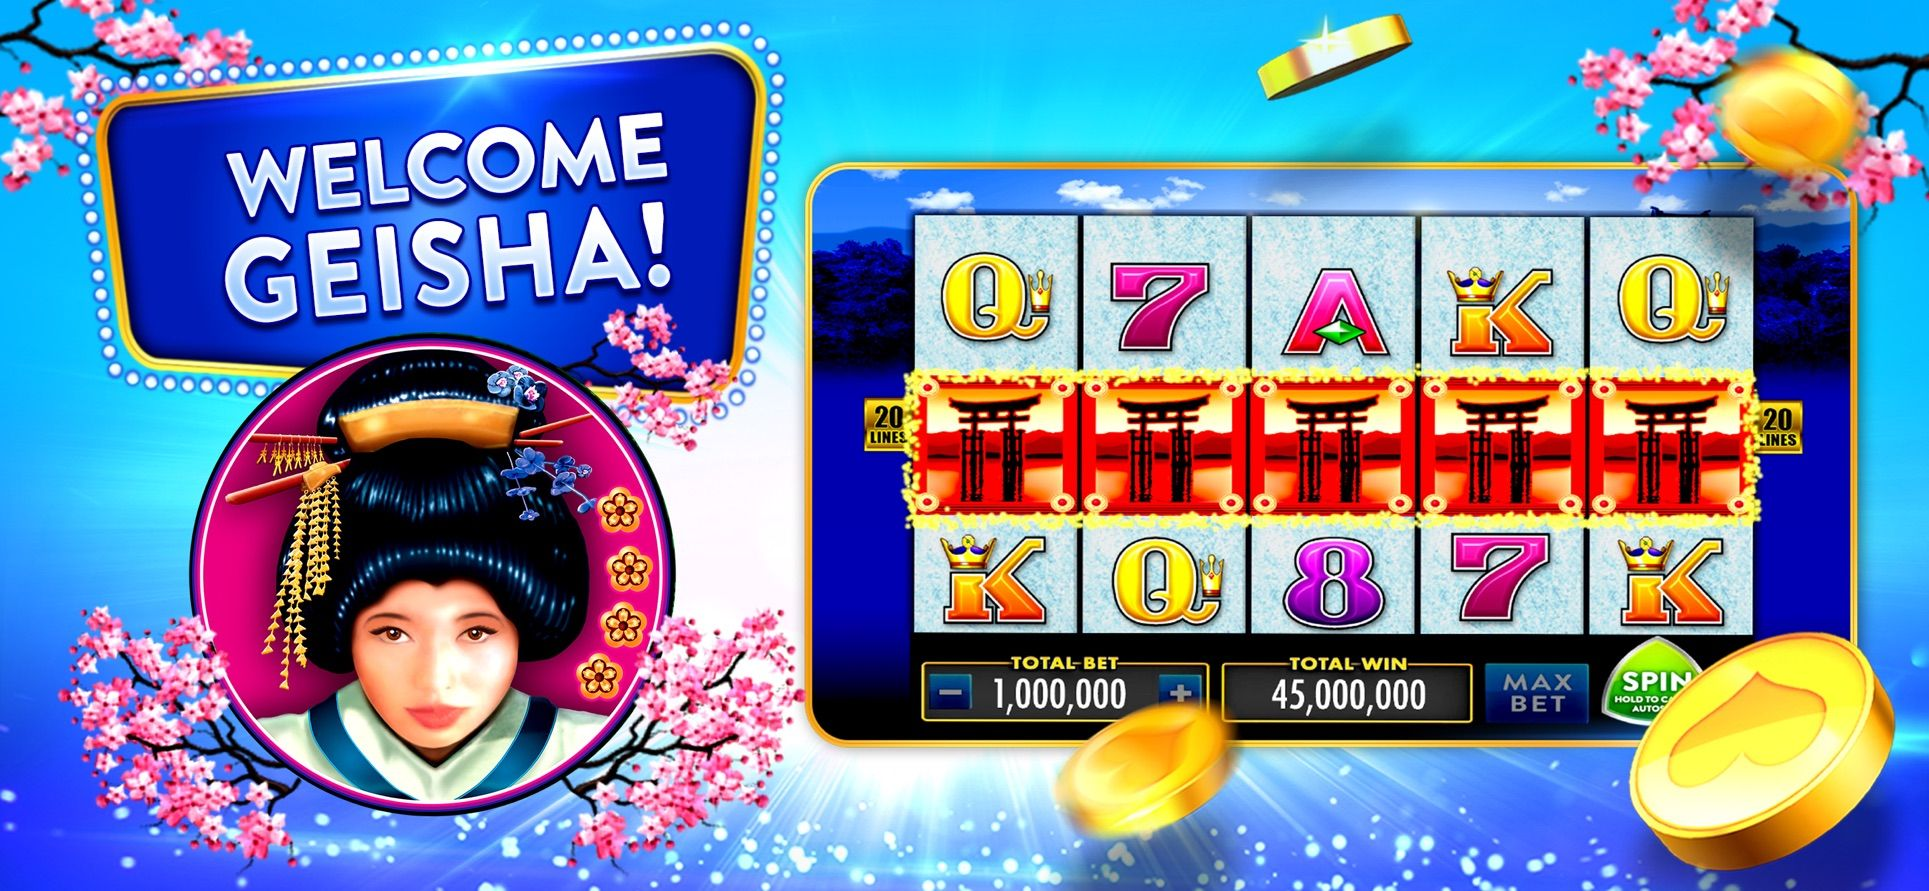 Heart Of Vegas Slots Casino On The App Store In 2020 Heart Of